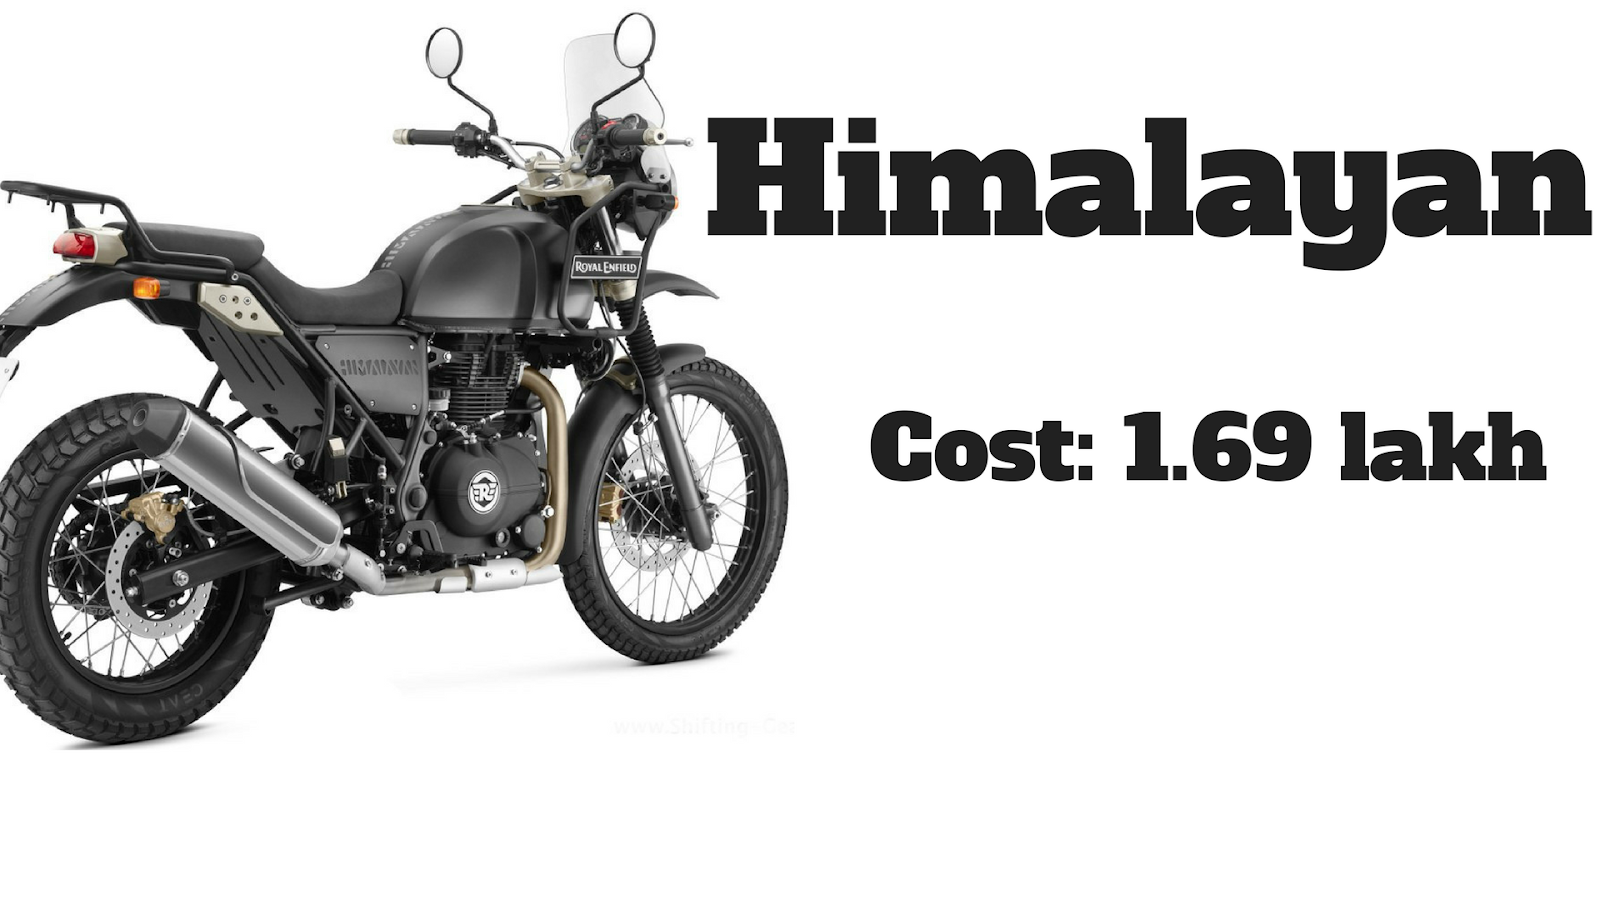 Royal Enfield Bullet Standard 350 Features And